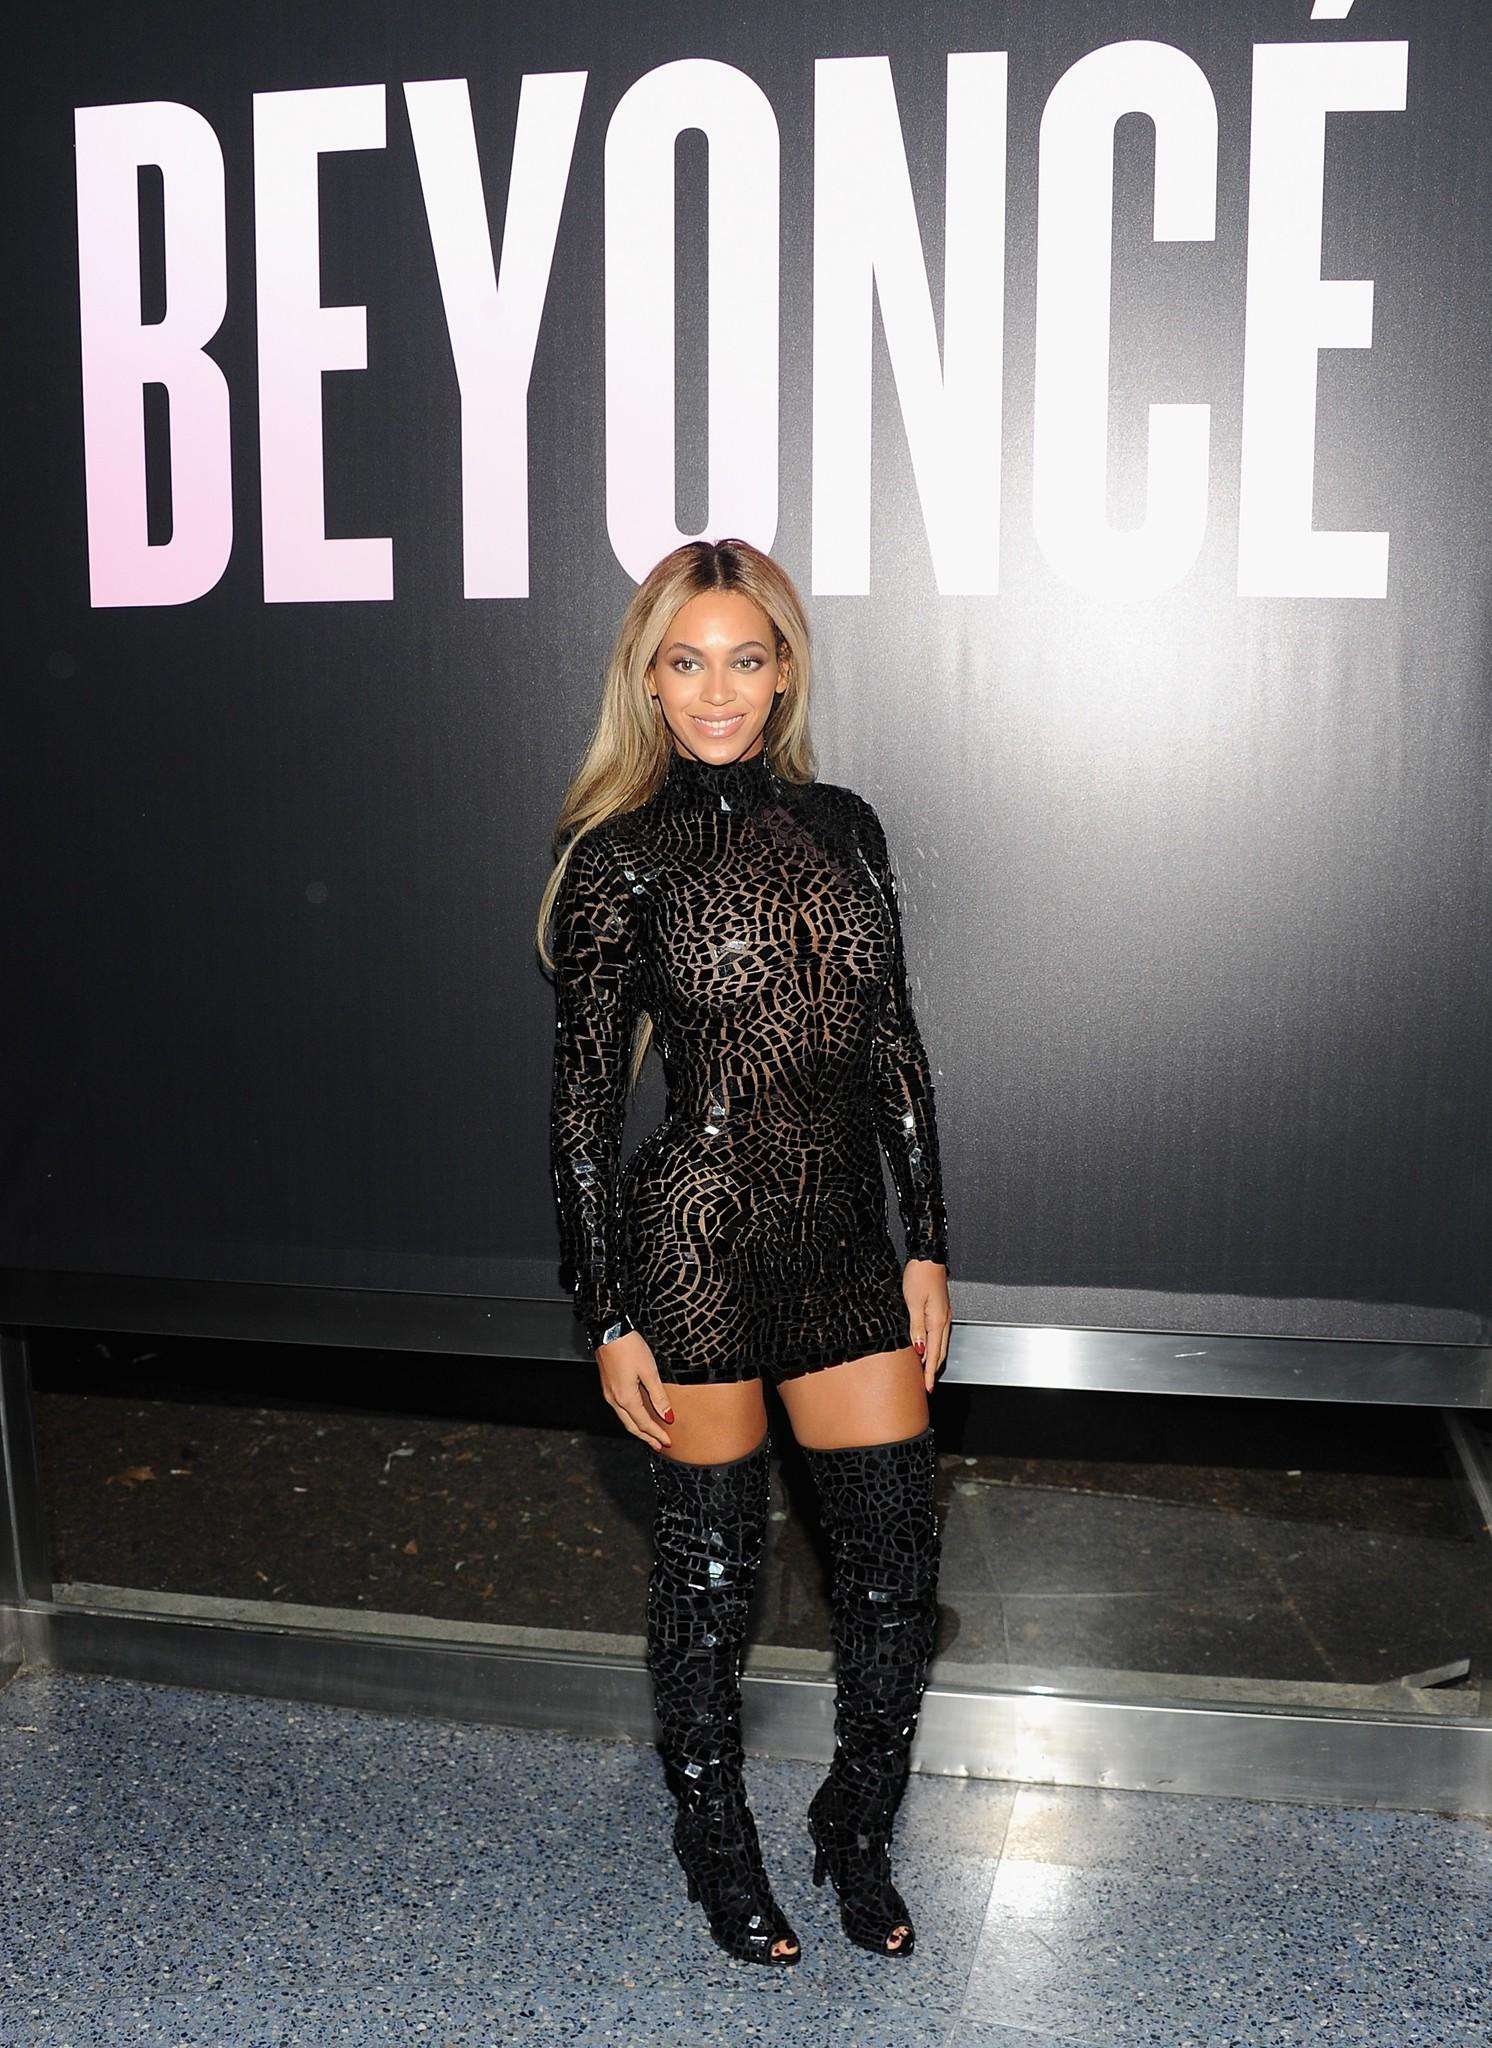 Beyonce stopped by a Wal-Mart store for a little shopping of her own, including a copy of her fifth self-titled album. Then she played Santa, paying for shoppers' purchases to the tune of $37,500.